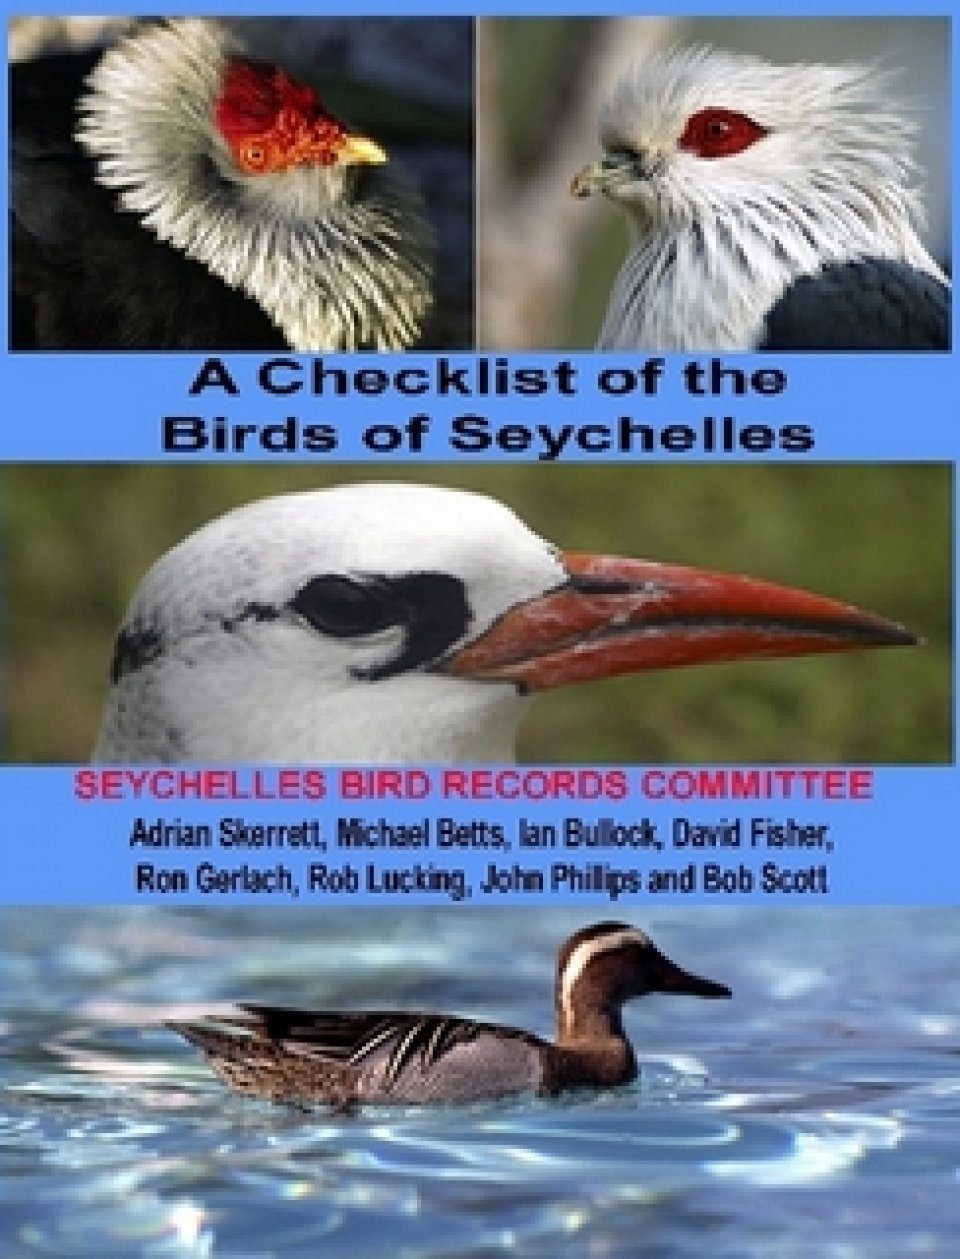 A Checklist of the Birds of Seychelles